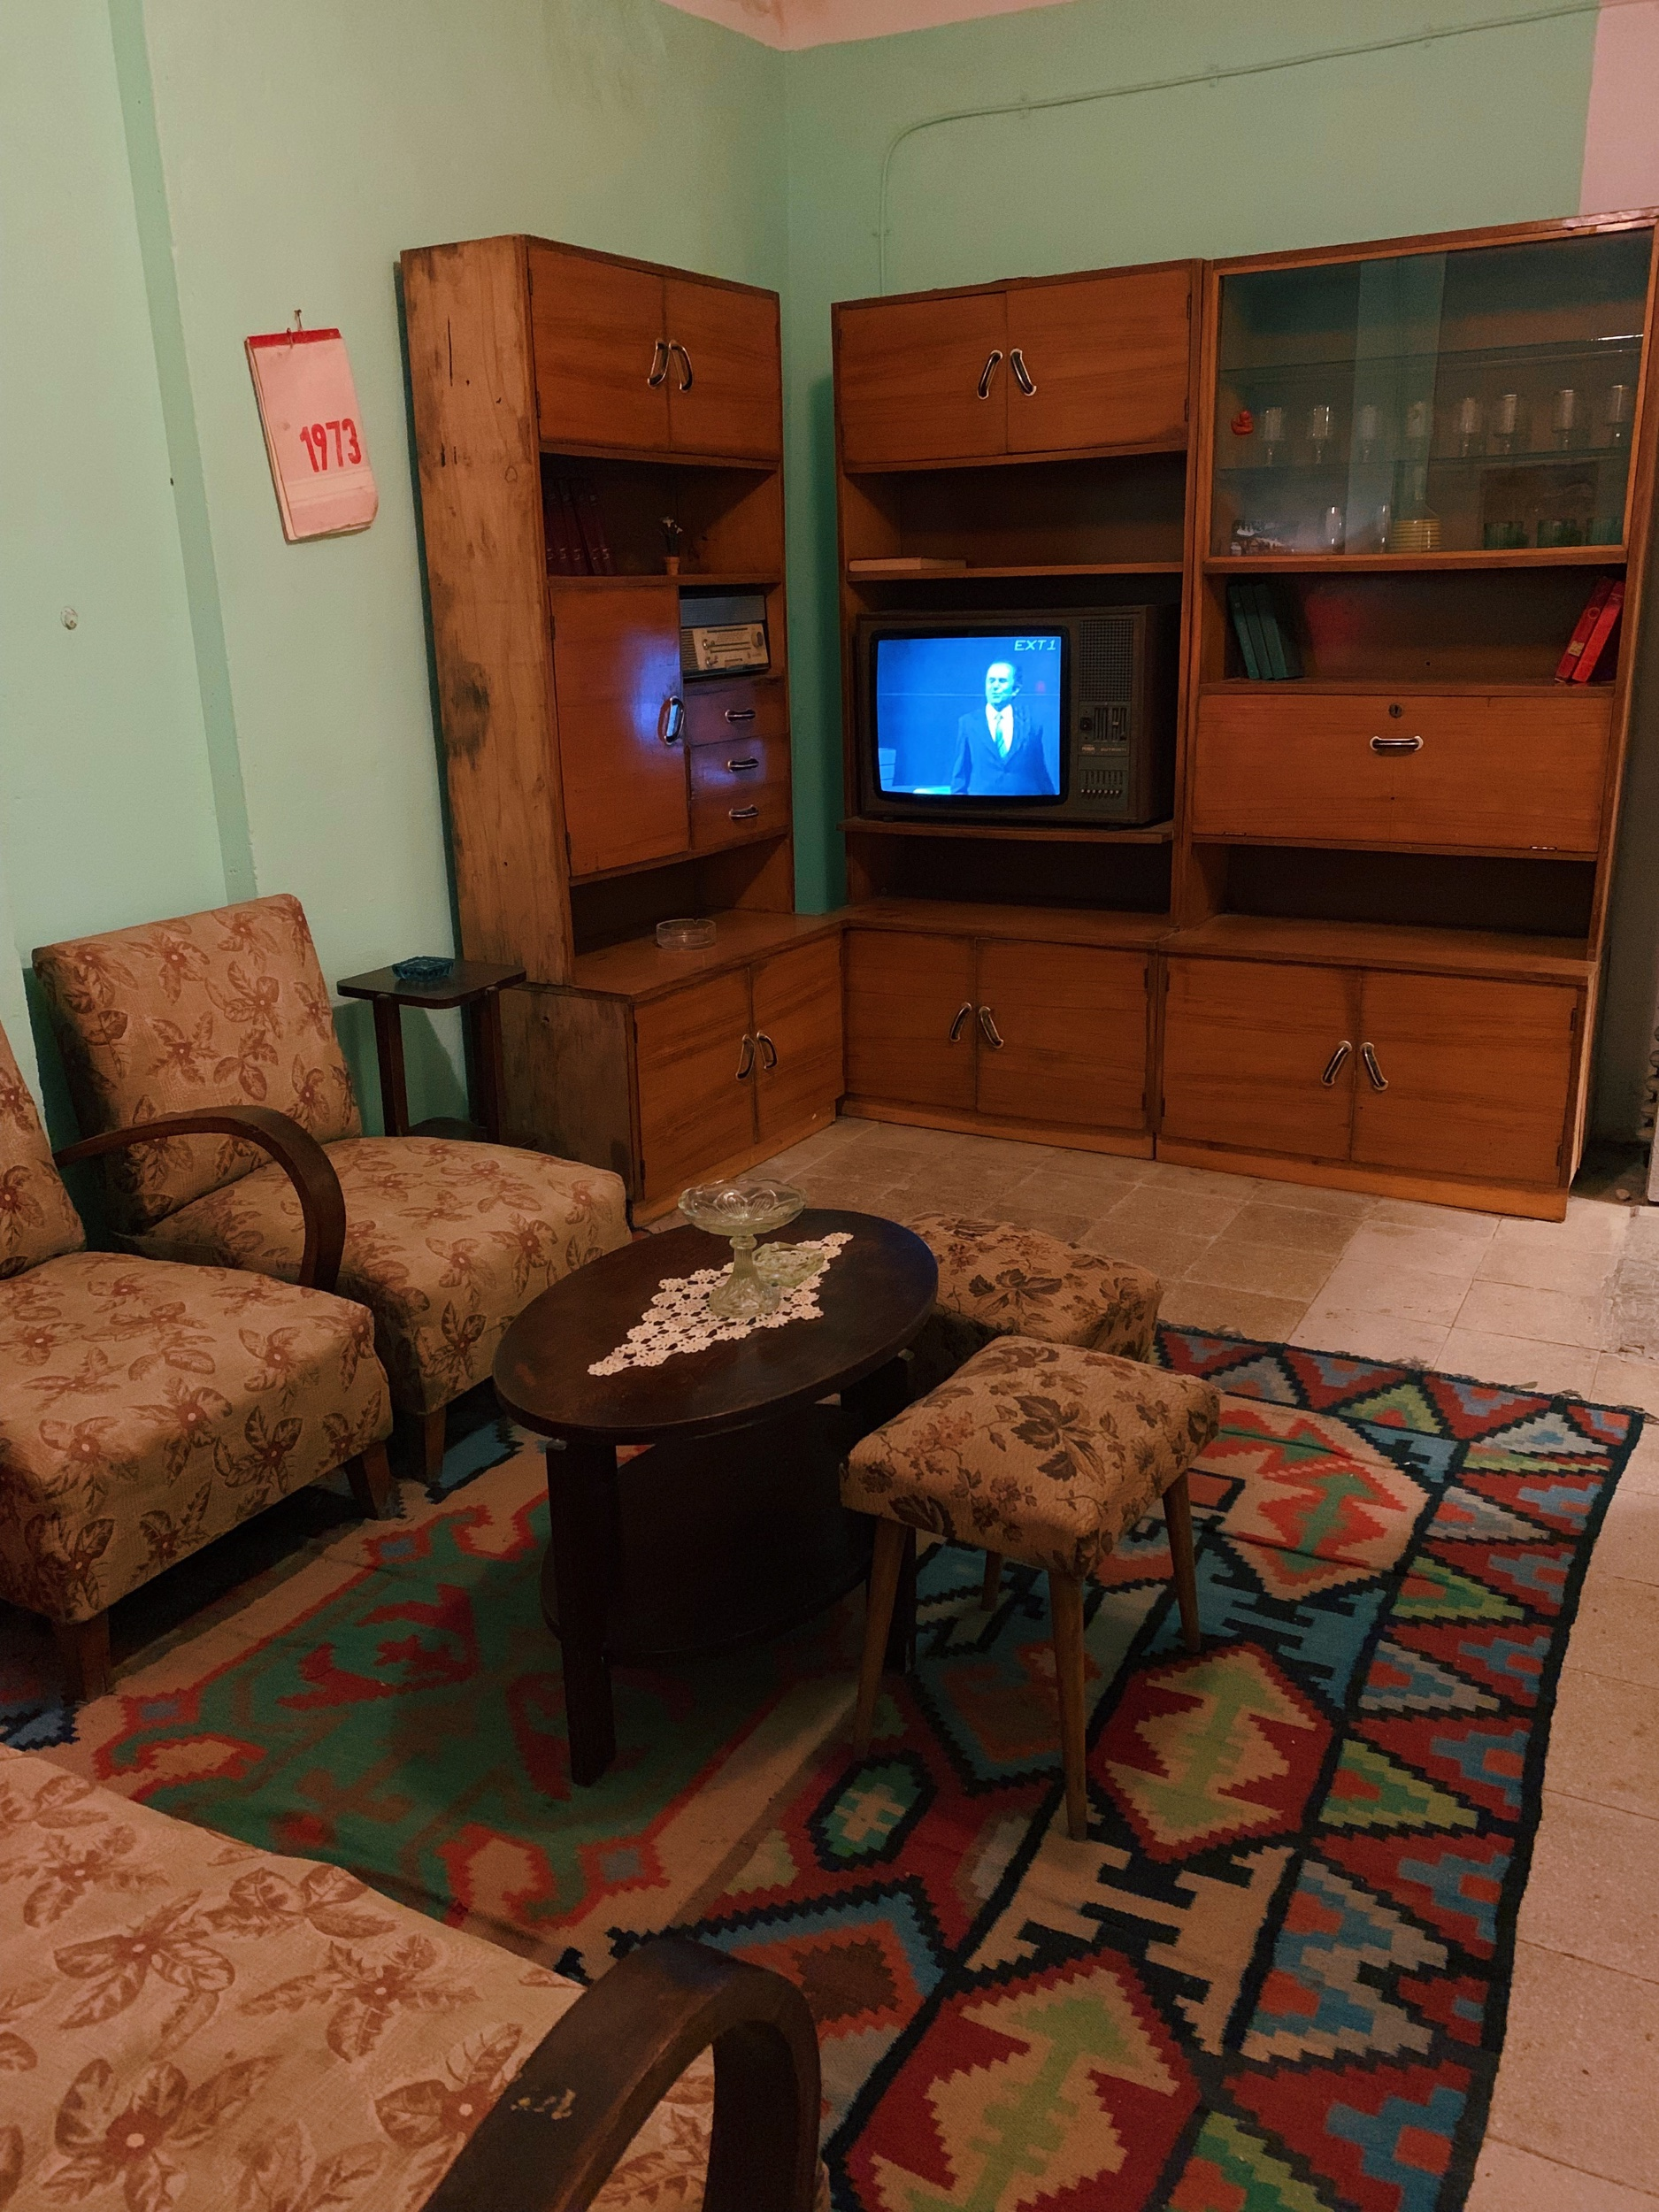 An example home from the Communist era, which you can see if you take a bus to  BUNK'Art 1  in Tirana. While this room is cool, the rest of the museum isn't as great at giving you the feeling of that era. Stick to BUNK'Art 2, which is in town, if you're short on time.